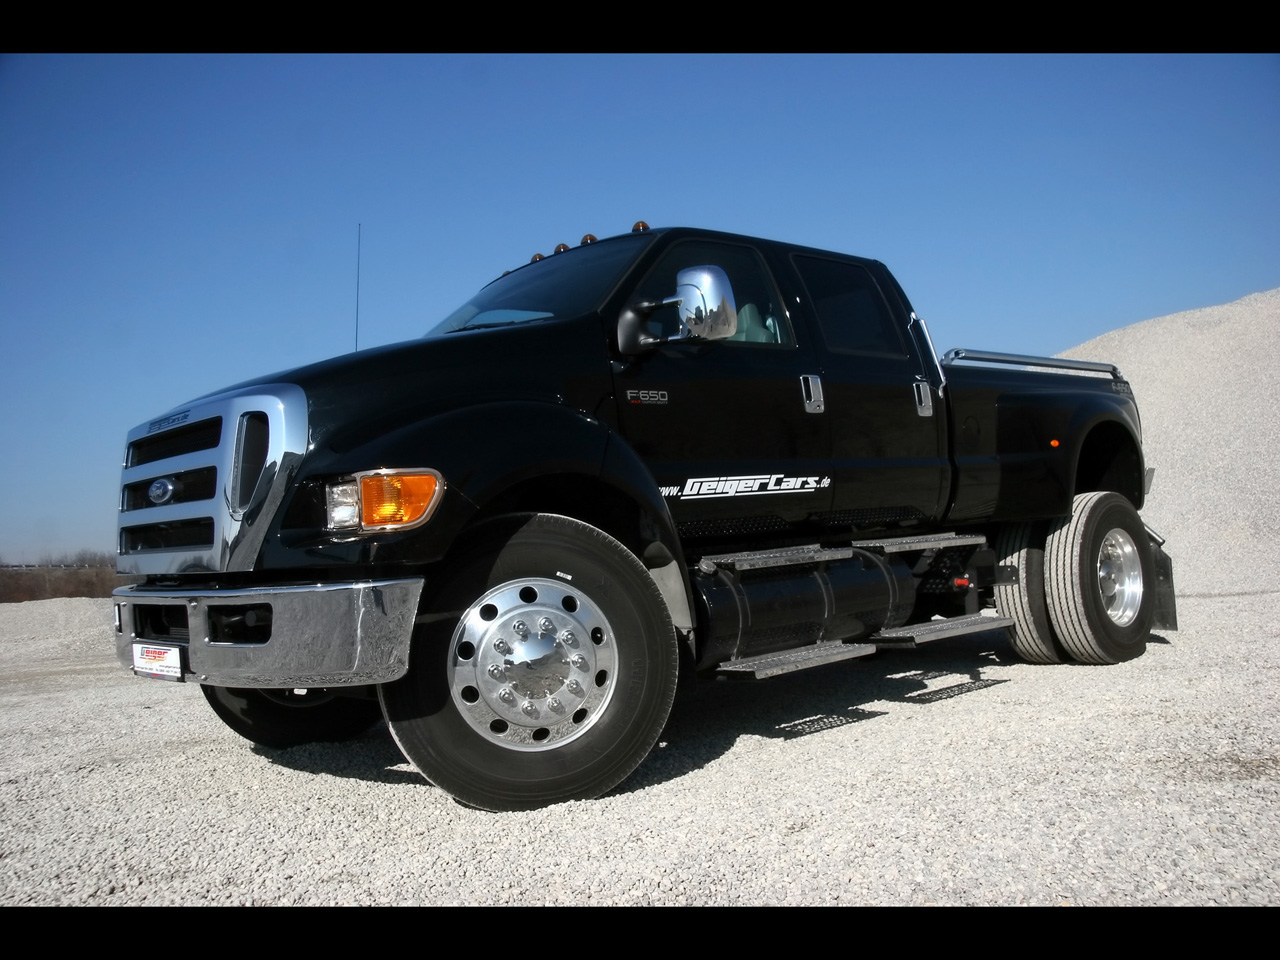 The Best Ford F650 Custom! Check It Out, One Of The Best ...